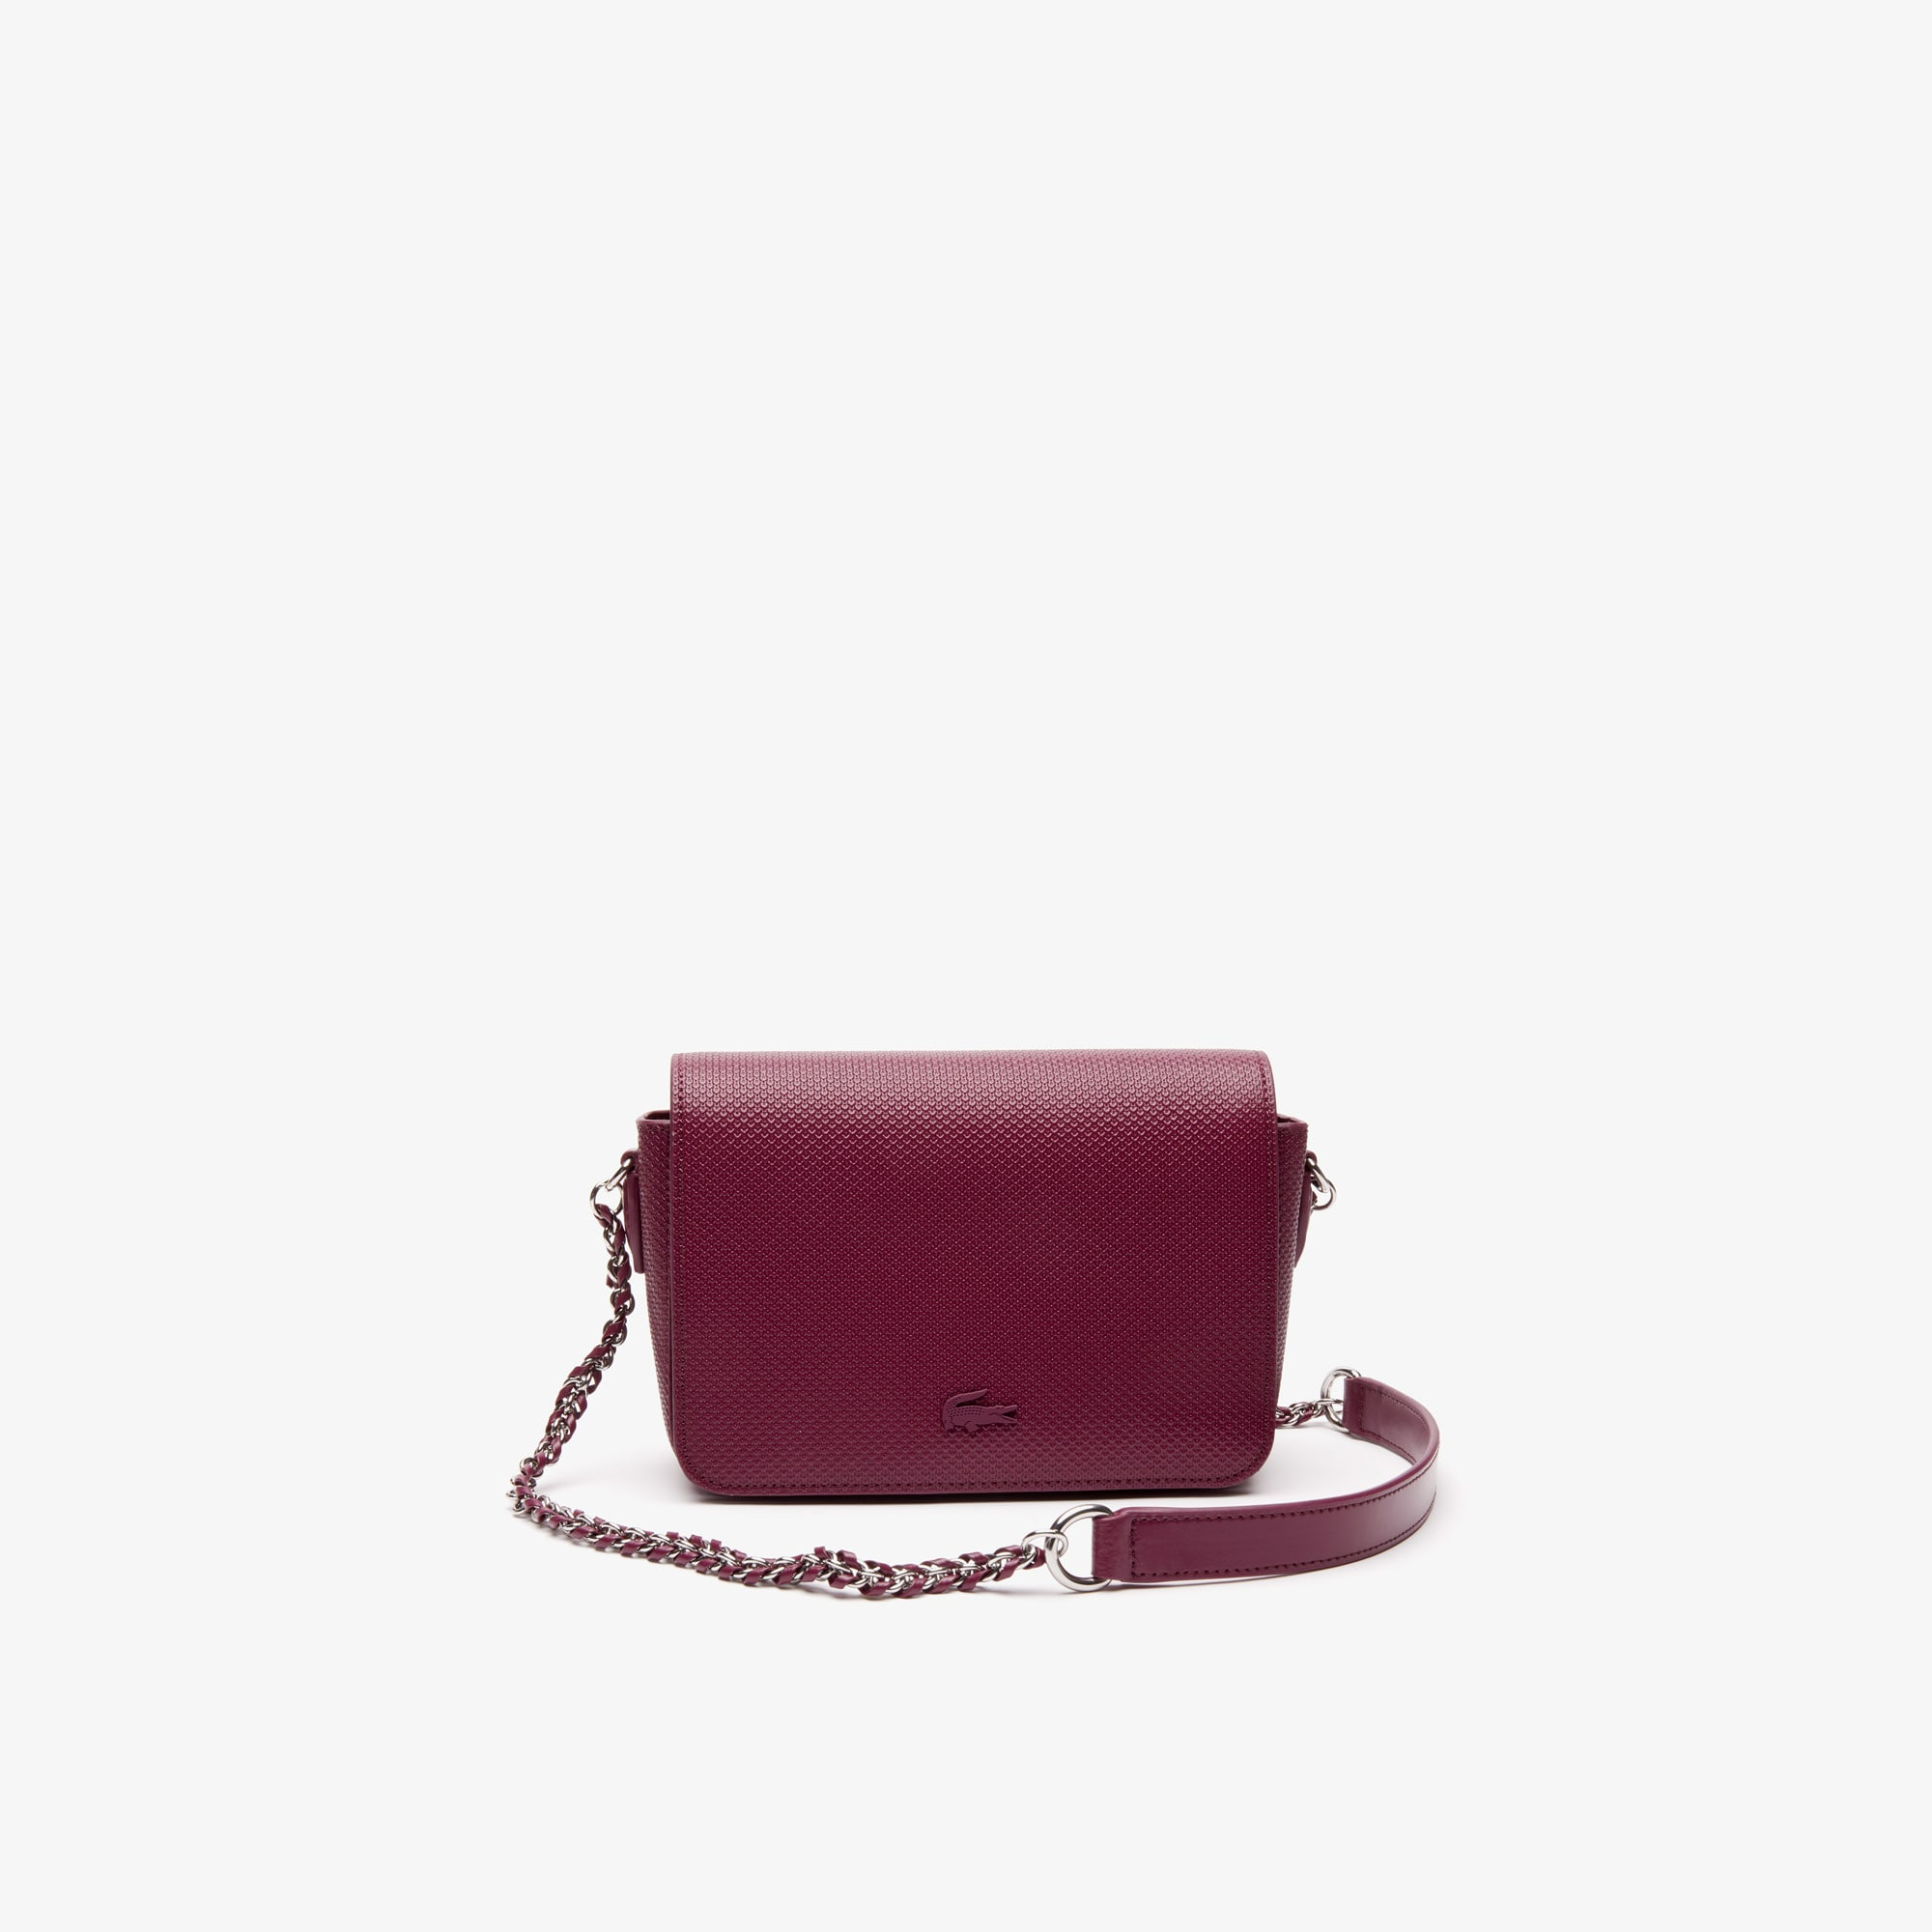 Lacoste Women's Chantaco Leather Flap Bag with Chain Strap